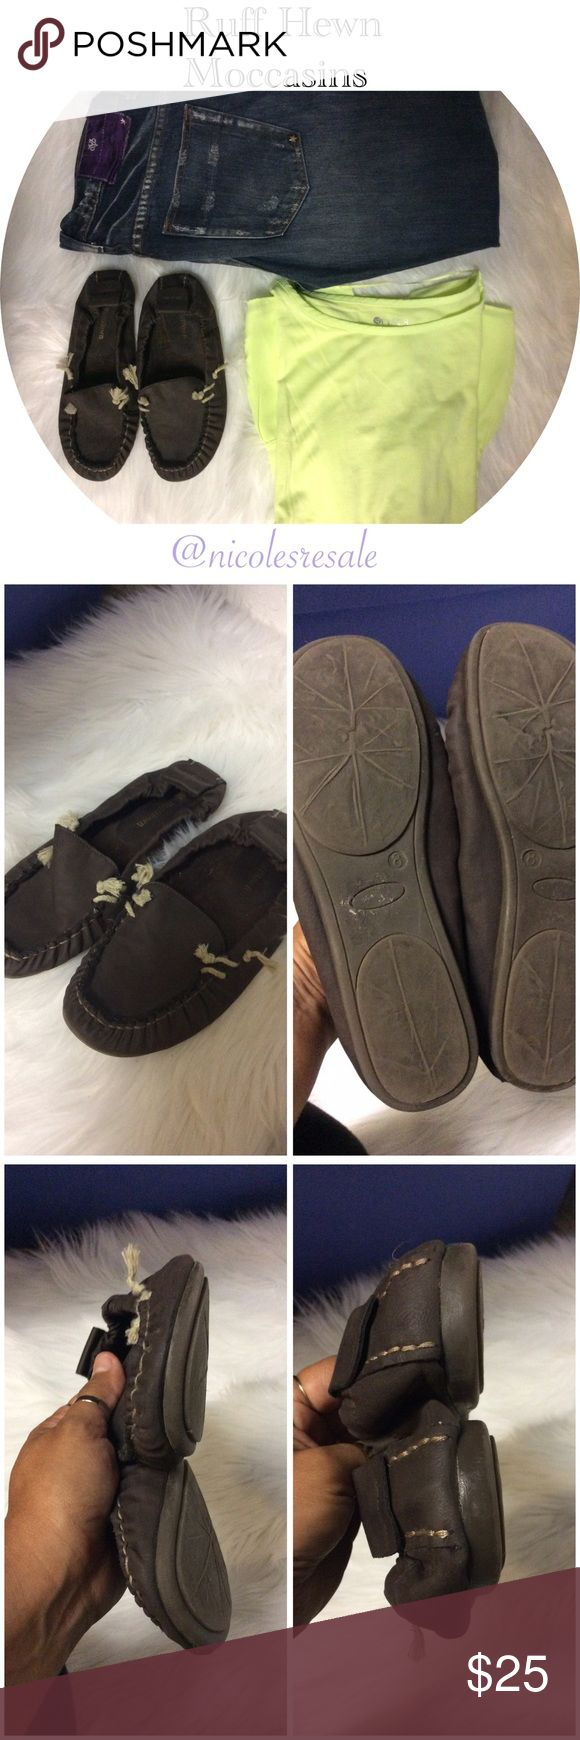 Ruff Hewn Moccasins Gray elastic heeled moccasins leather gently used consignment piece marked 8 but run about a size small. Ruff Hewn Shoes Moccasins